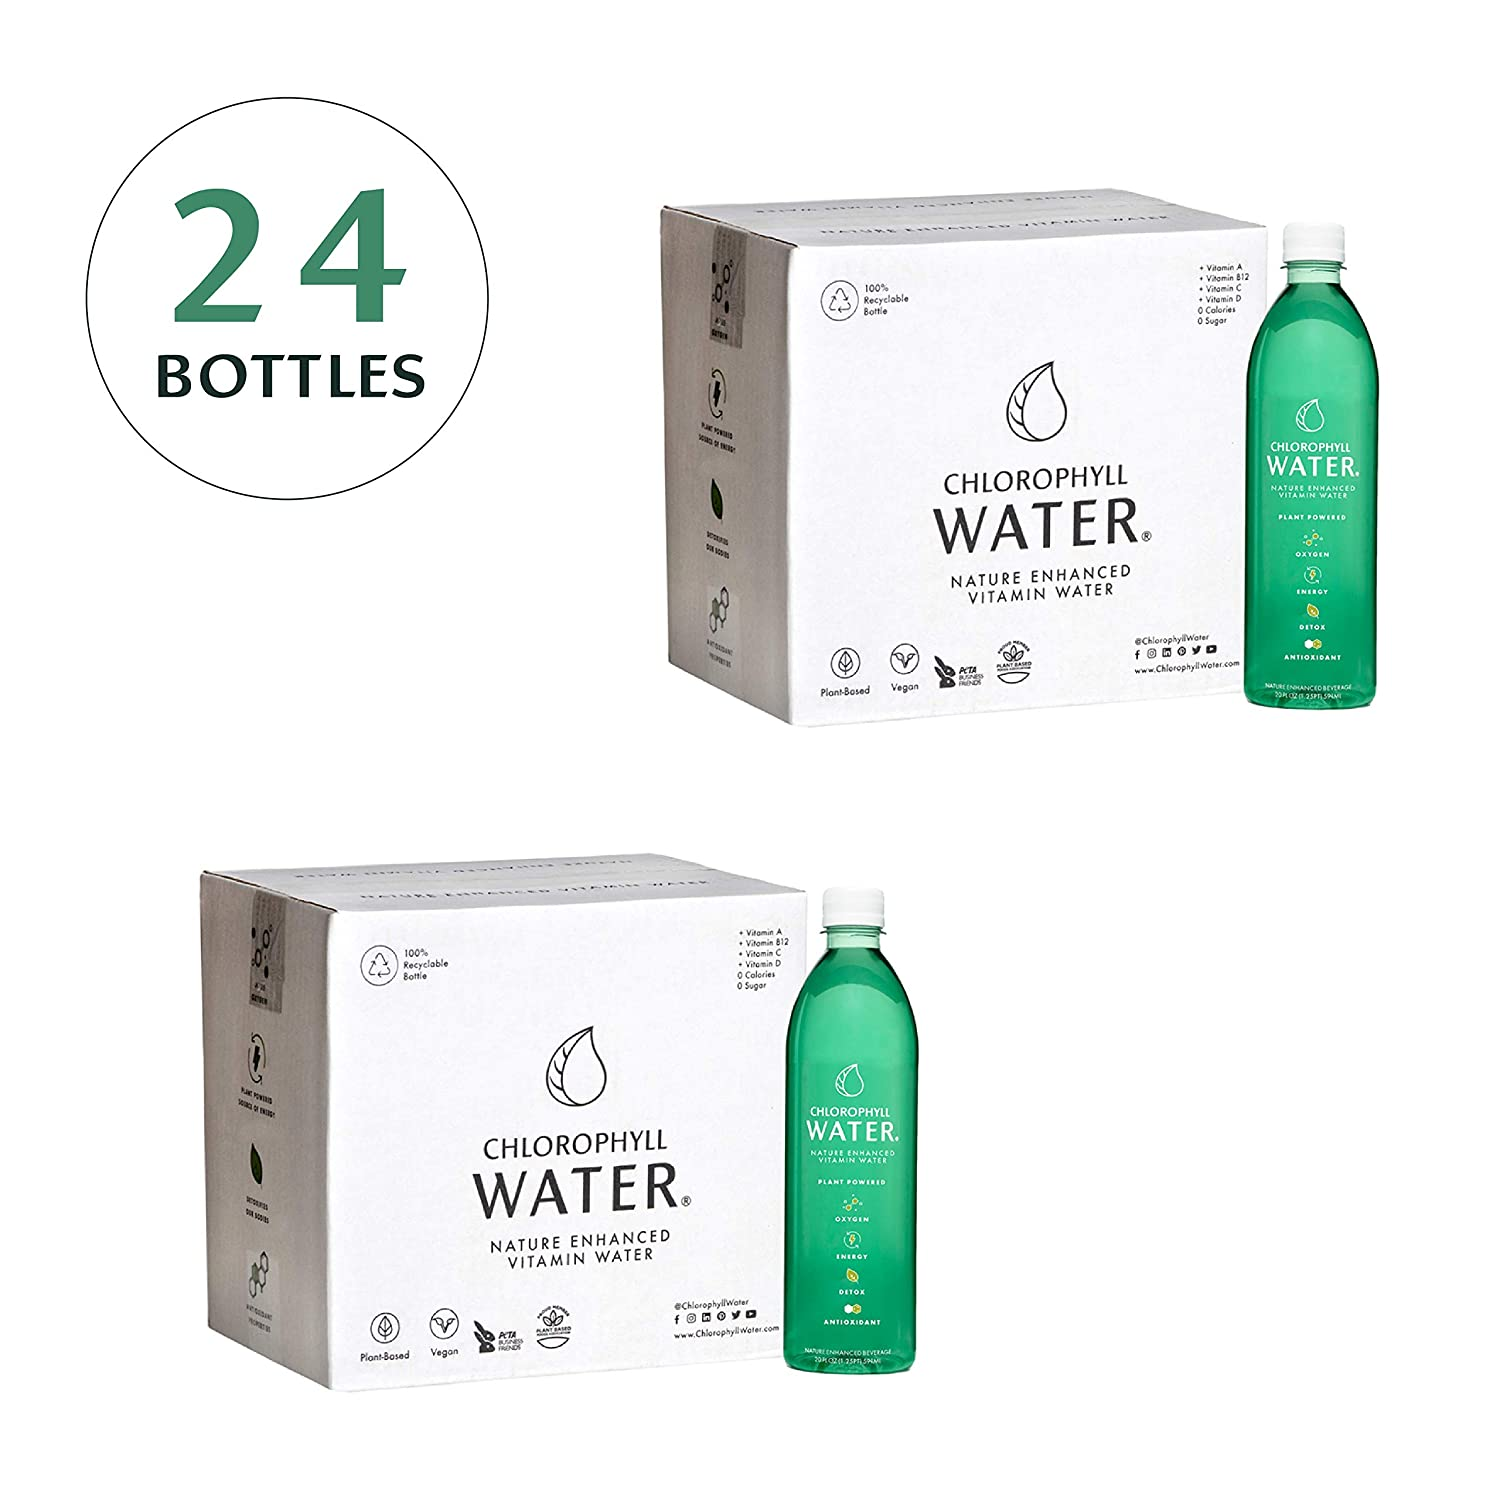 2 Cases: Chlorophyll Water: Nature Enhanced Vitamin Water For Energy, Detox, Antioxidants, Liquid Chlorophyll, Purified Water with Vitamins A, B12, C & D, Zero Calories, 20oz (24 Bottles)